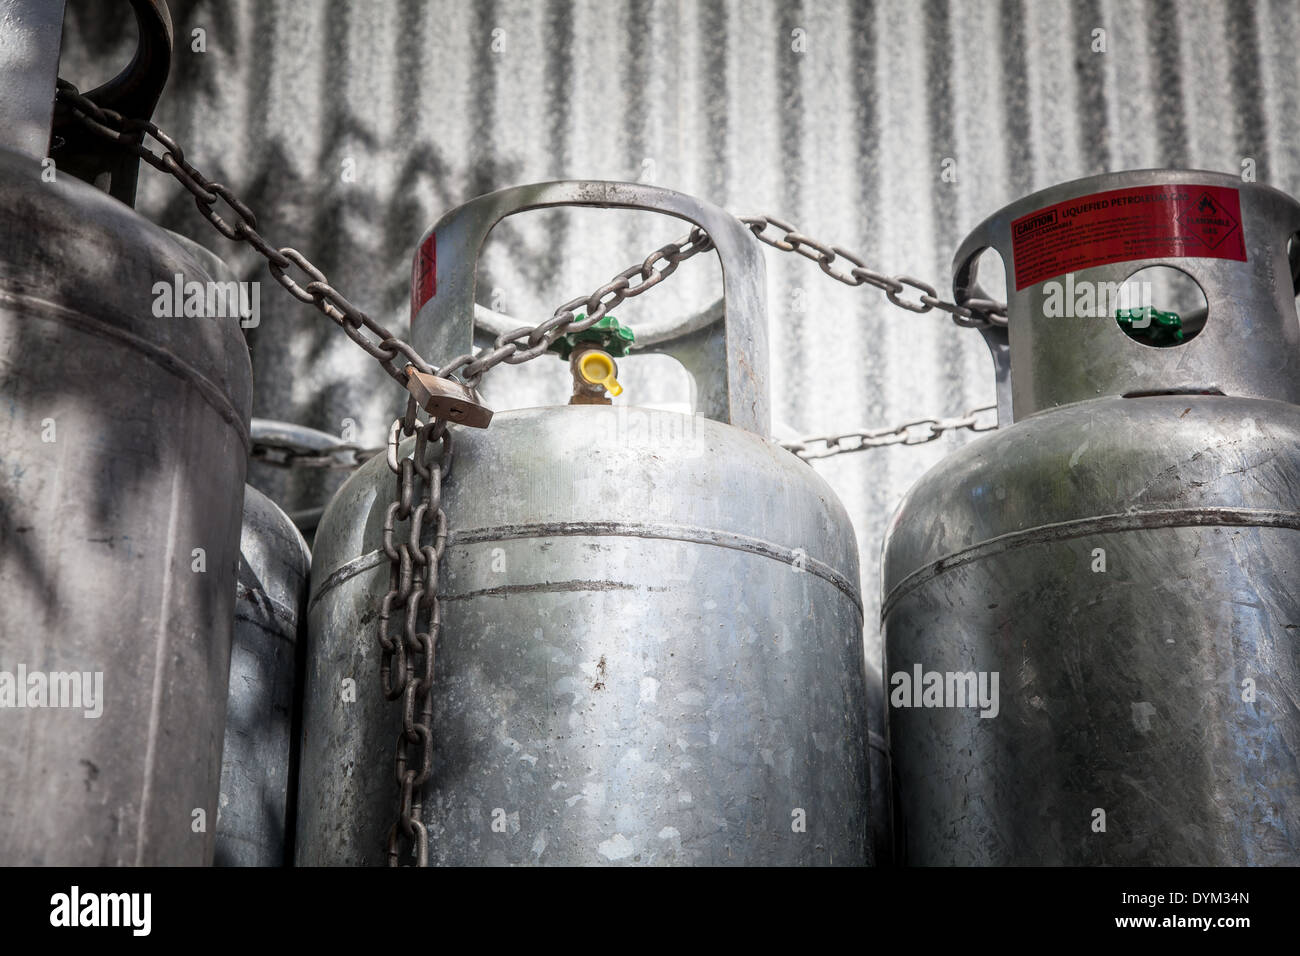 Some gas bottles chained and padlocked against a galvanized steel wall. - Stock Image